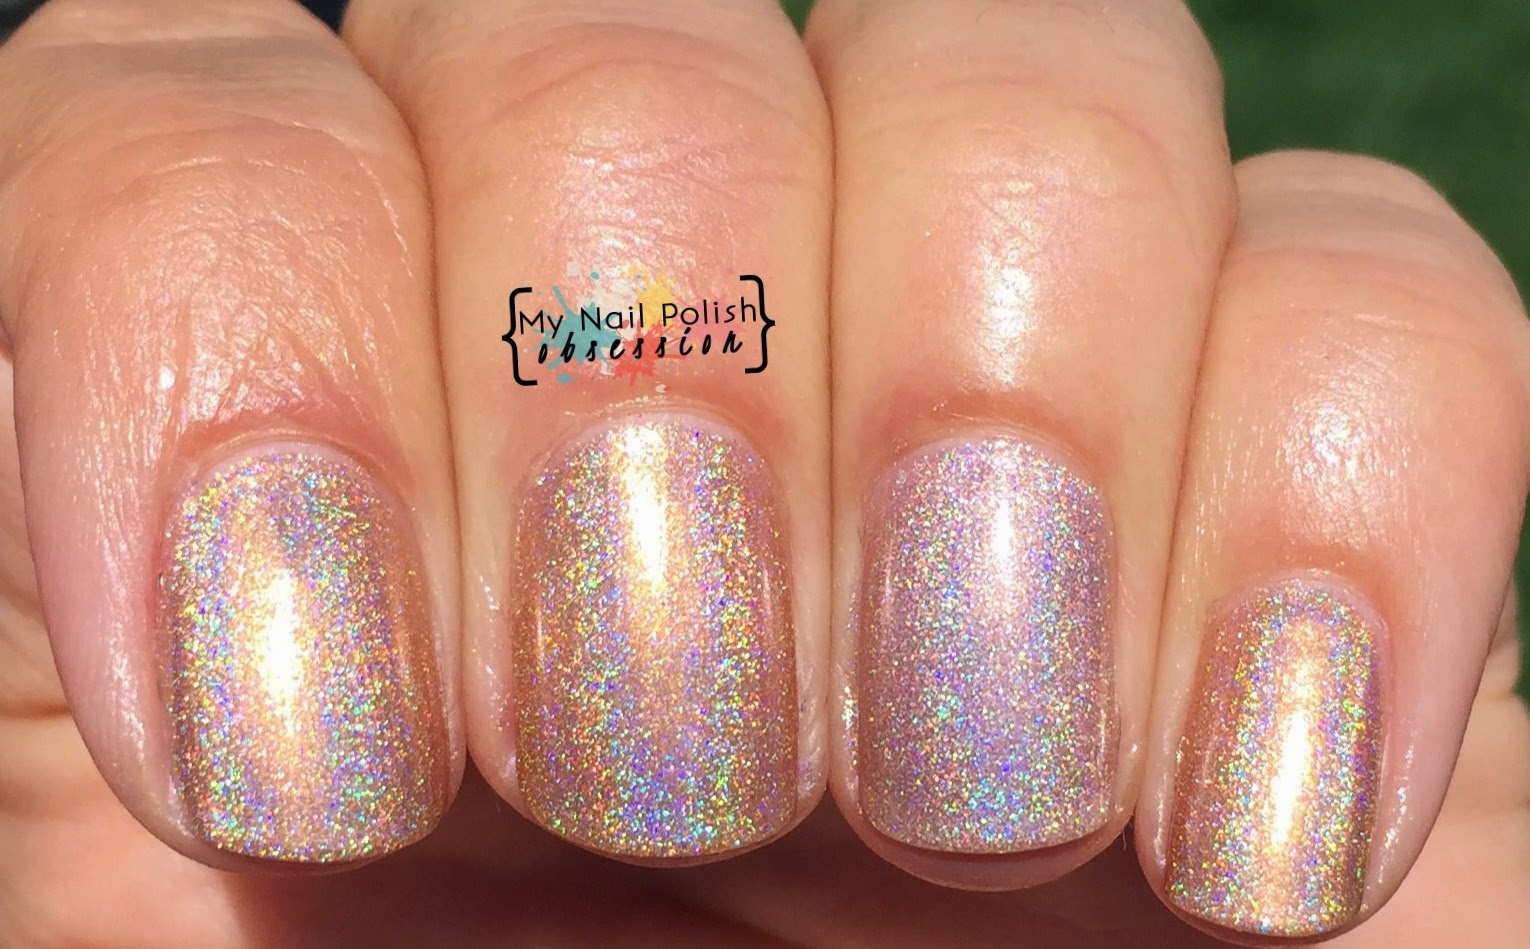 Comparison of Smitten Polish A Parliament of Owls & The Accidental Nudist